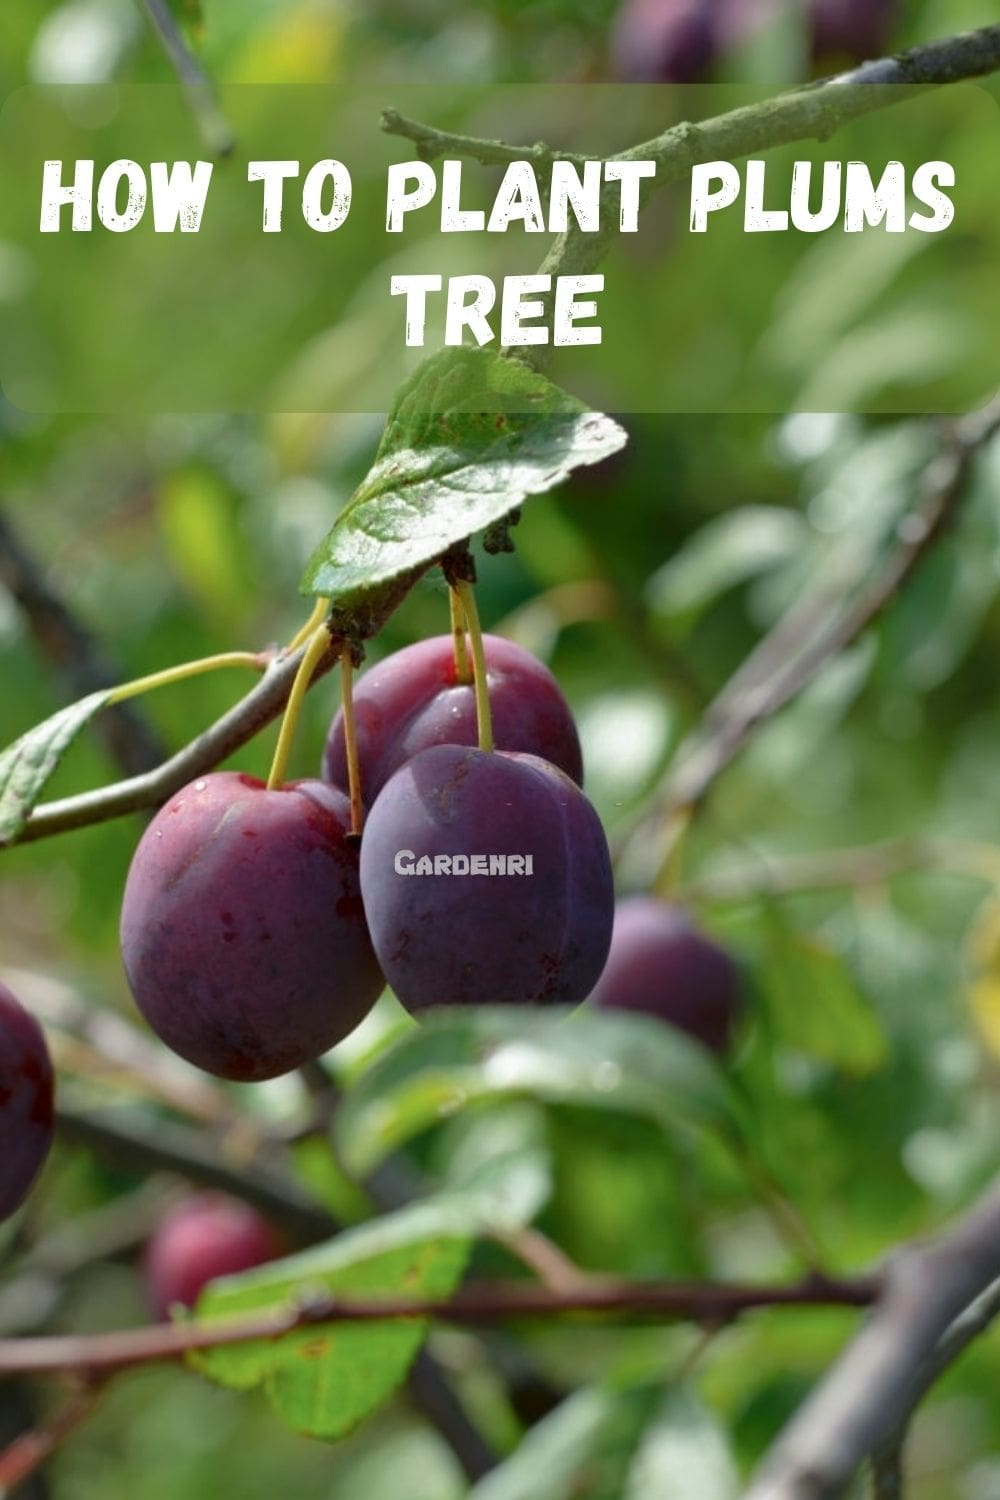 How to Plant Plums Tree